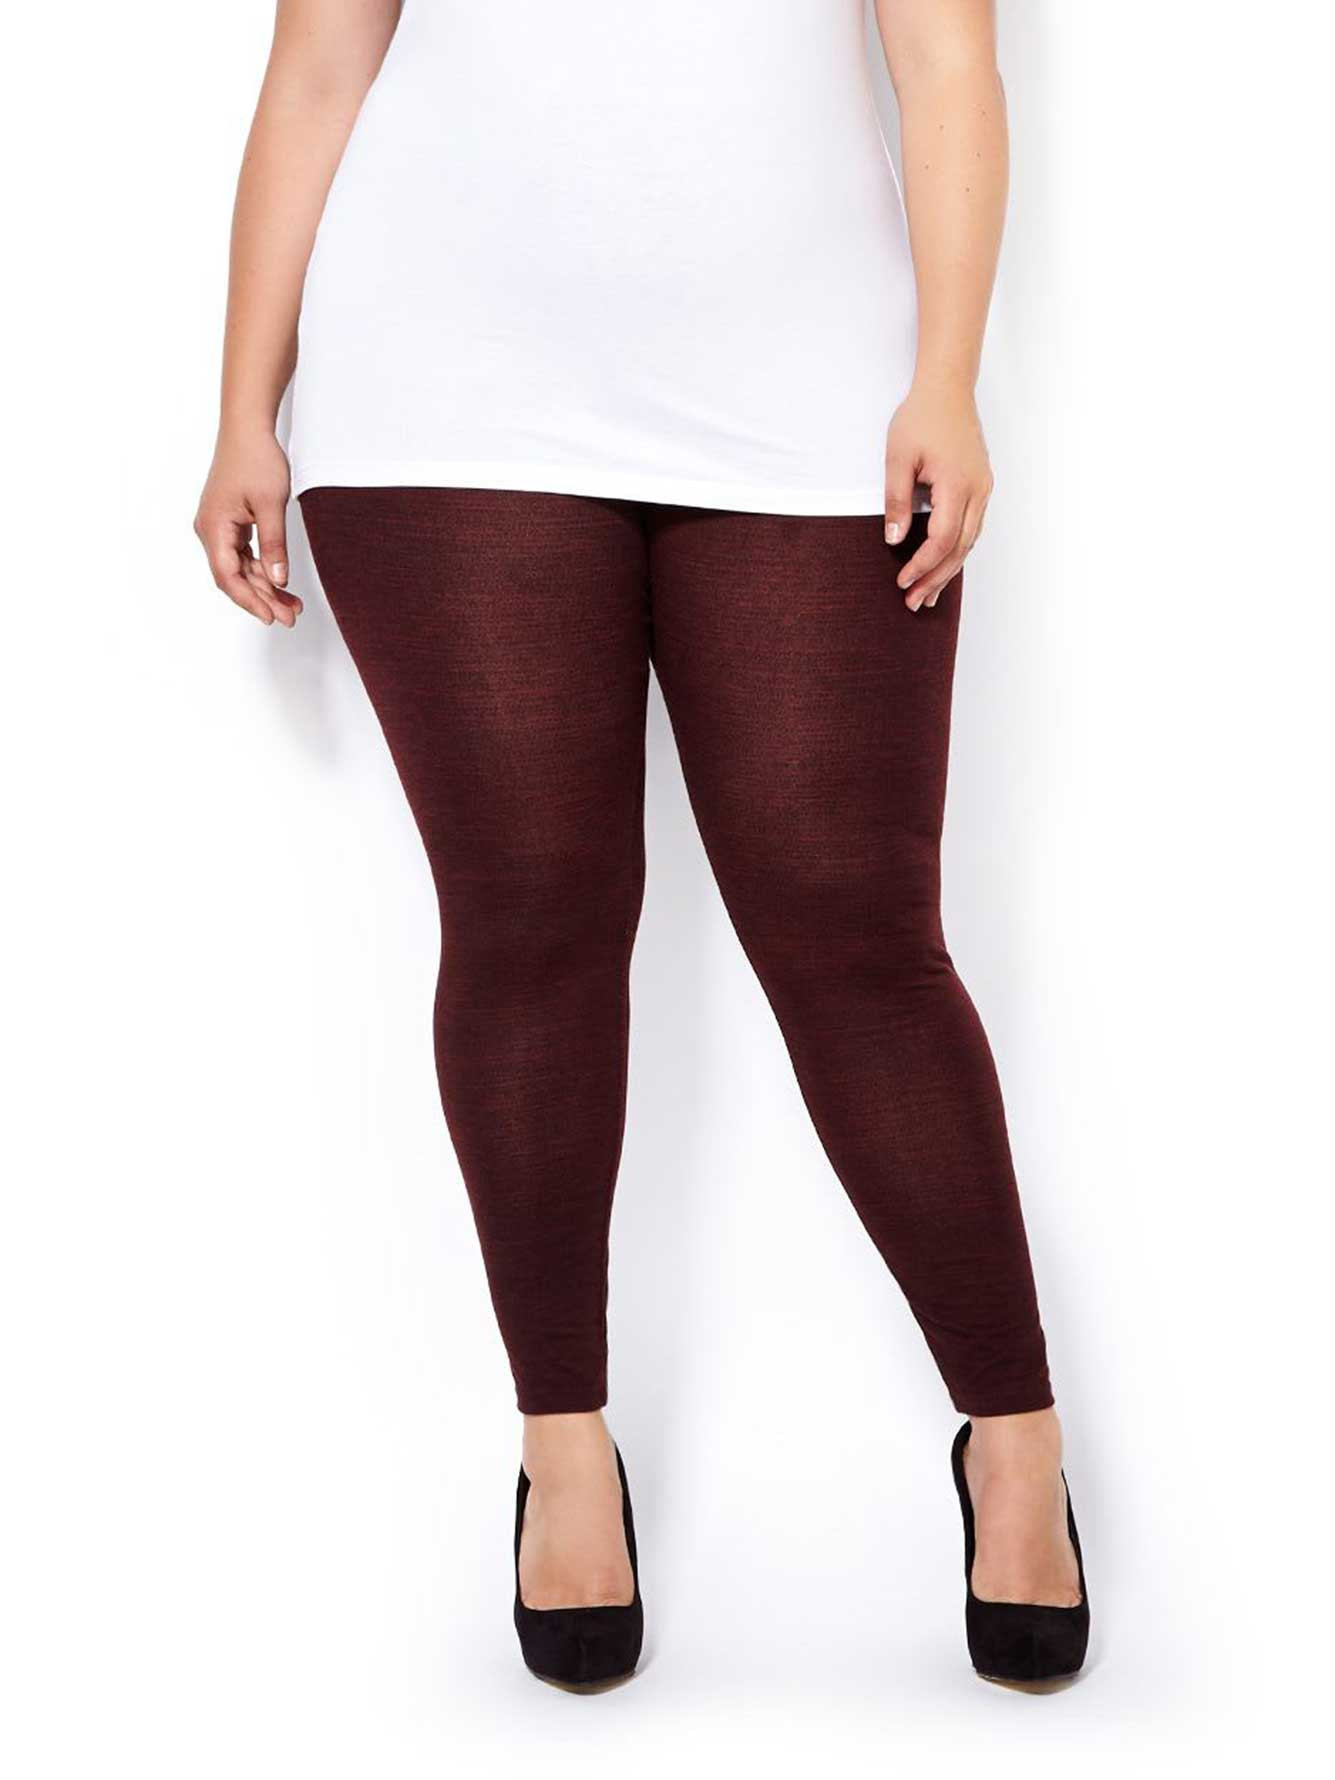 More Details Spanx Plaid Lace Tights, Very Black Details Spanx plaid lace patterned tights. Total control panel trims the waist, hips, thighs, and seat. Total control panel trims the waist, hips, thighs, and seat.